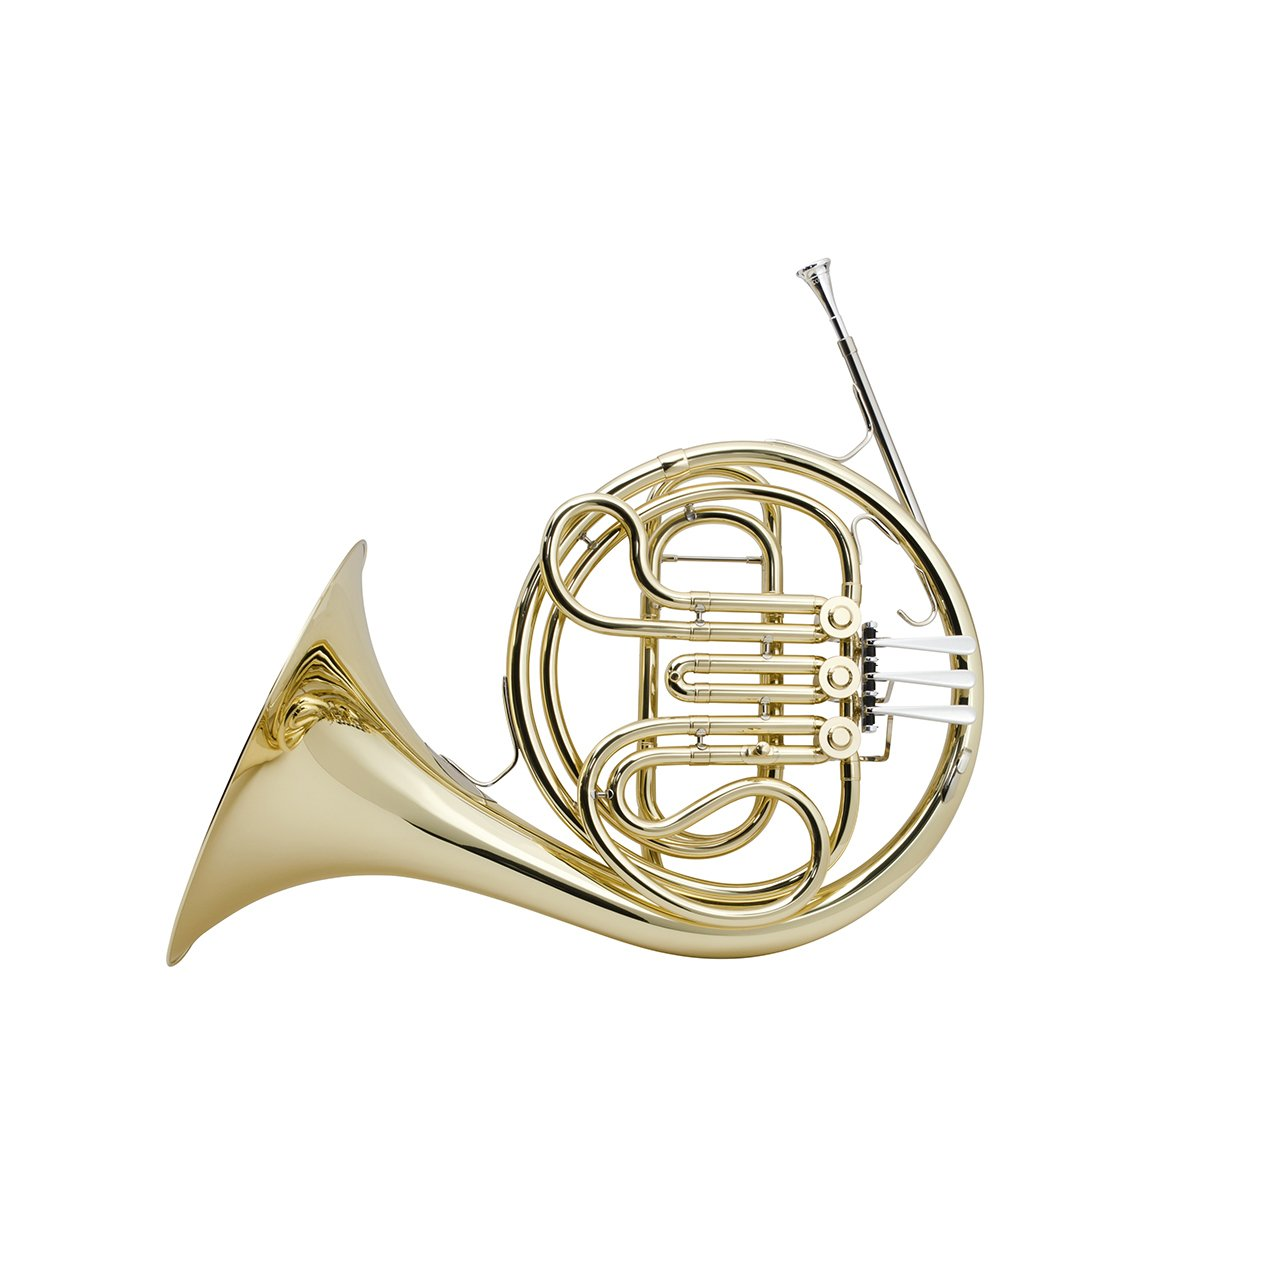 C.G. Conn 14D Student Model Single French Horn